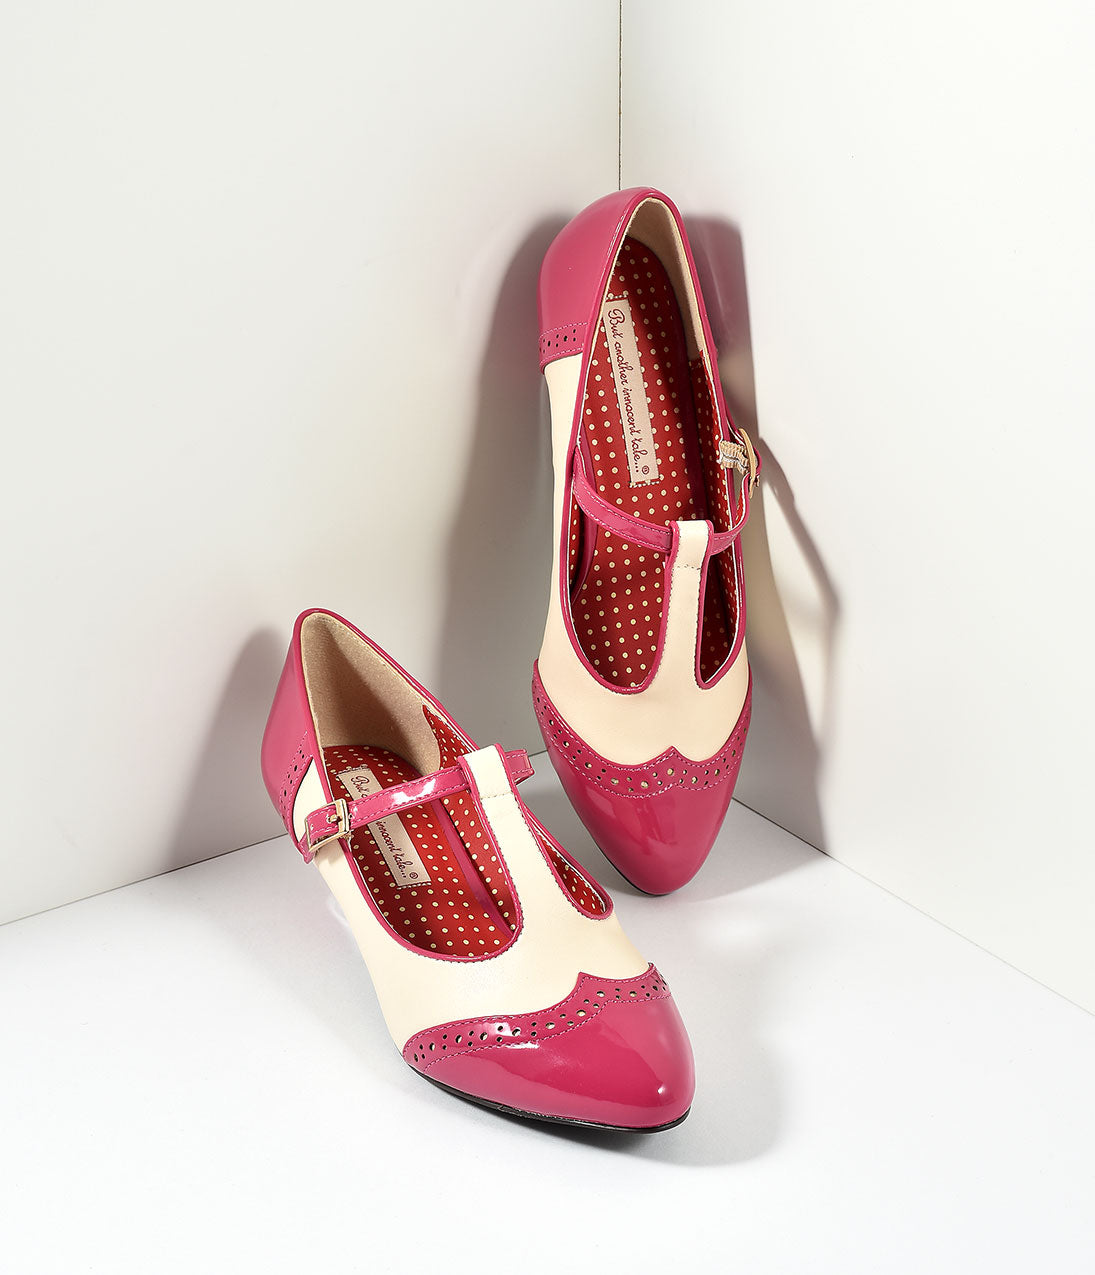 1950s Style Shoes | Heels, Flats, Saddle Shoes B.A.I.T. Vintage Rose Pink Ione Wingtip Spectator T-Strap Pumps Shoes $67.00 AT vintagedancer.com